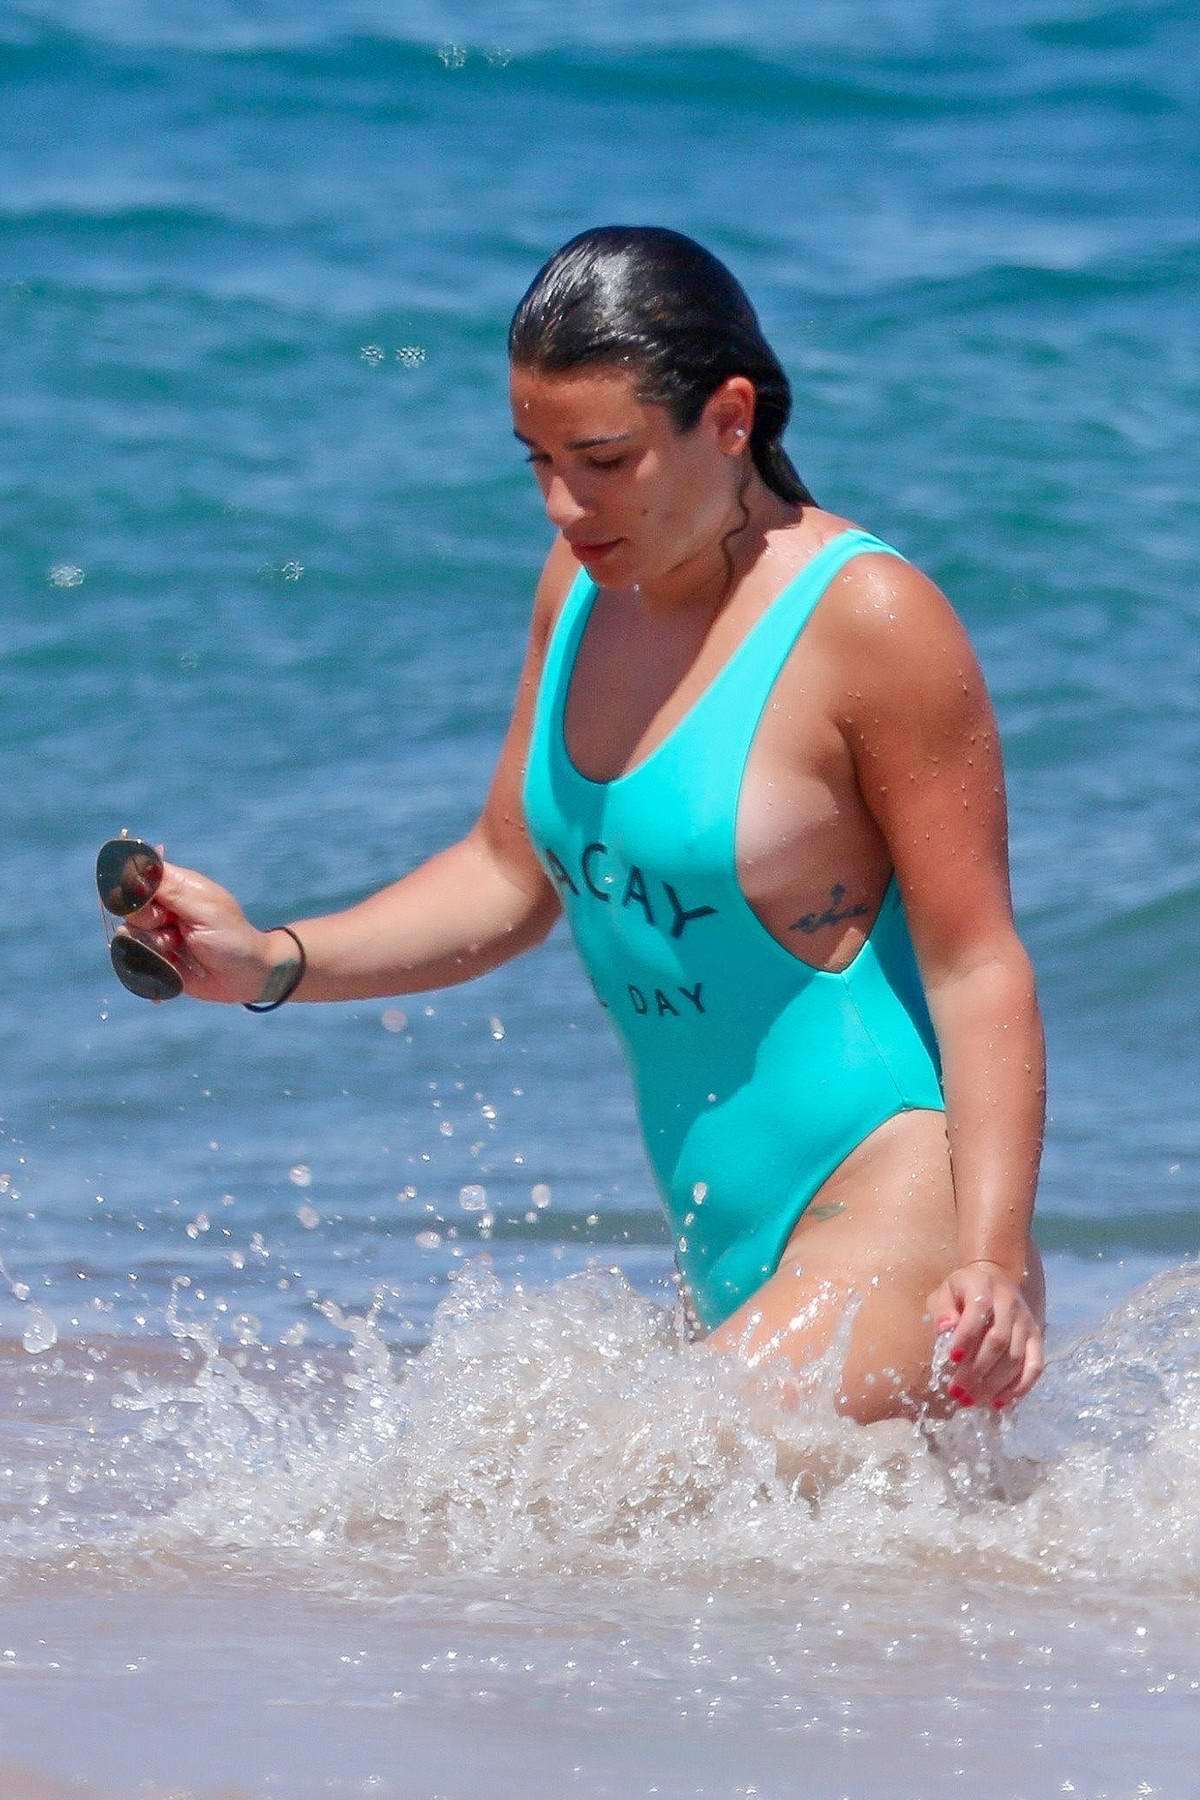 lea-michele-in-a-blue-swimsuit-shows-off-her-yoga-skills-on-a-paddle-board-in-maui-hawaii-300617_7.jpg